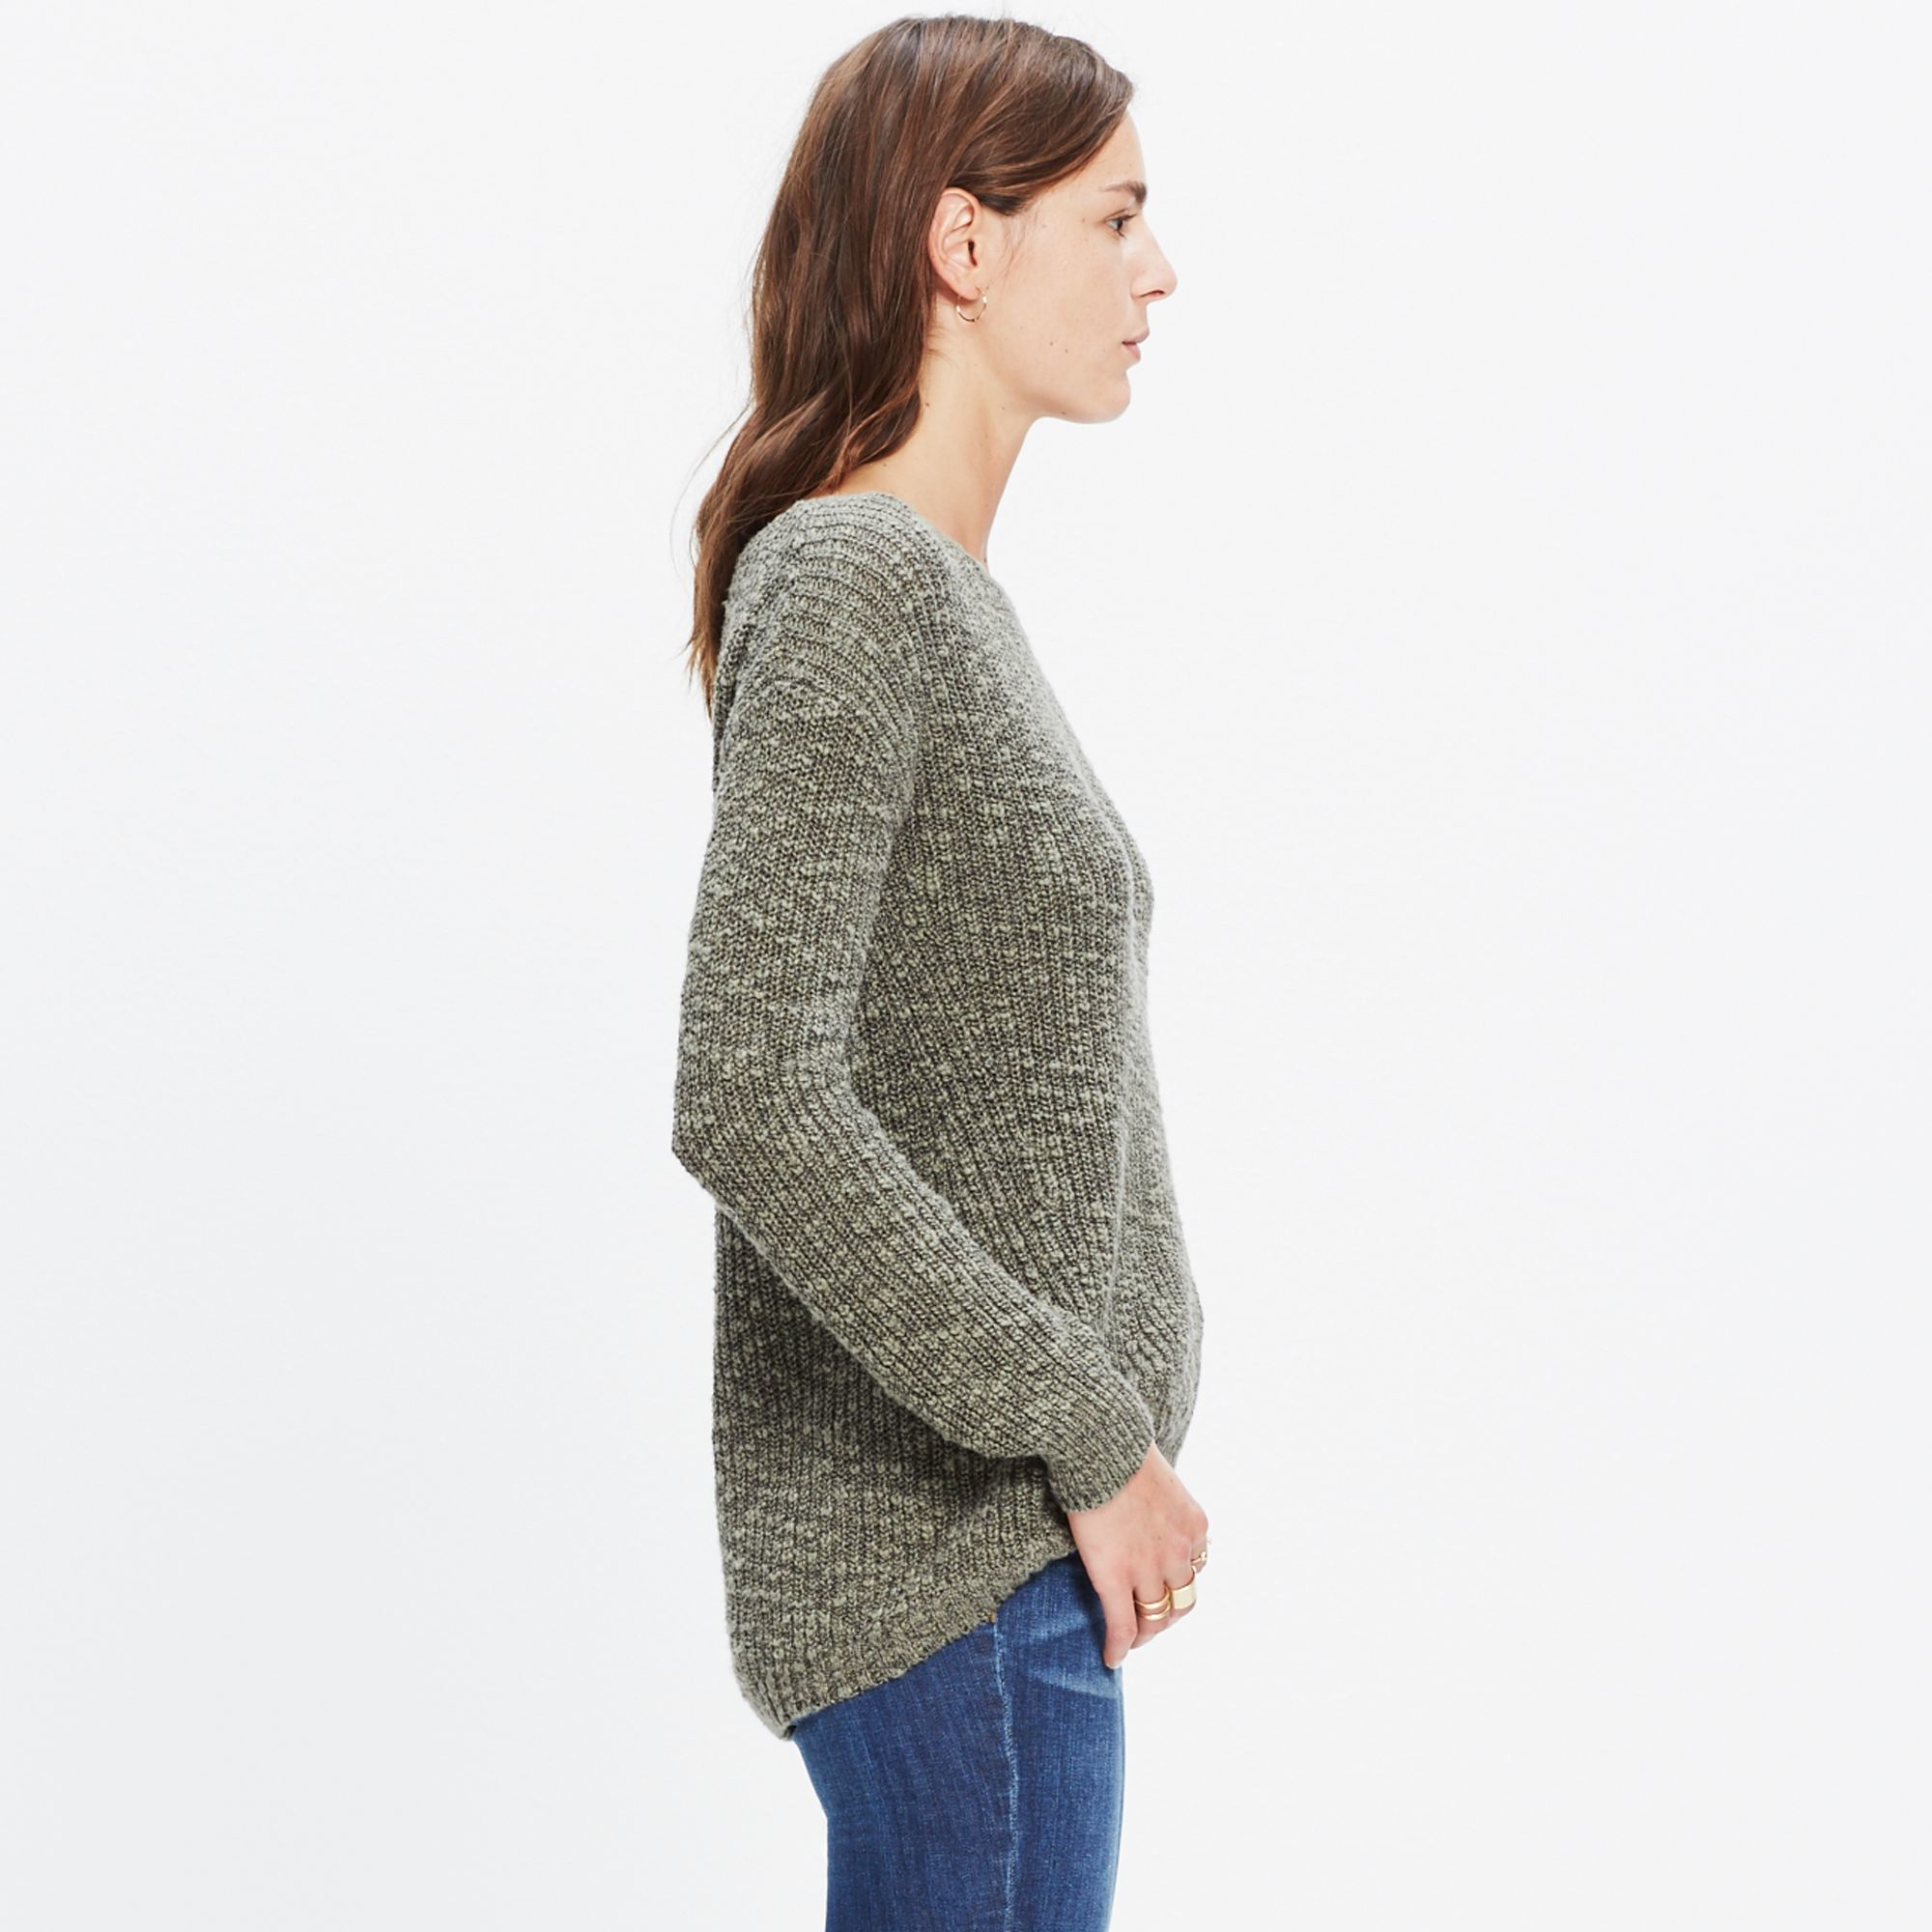 Madewell Leftbank Pullover Sweater in Green | Lyst